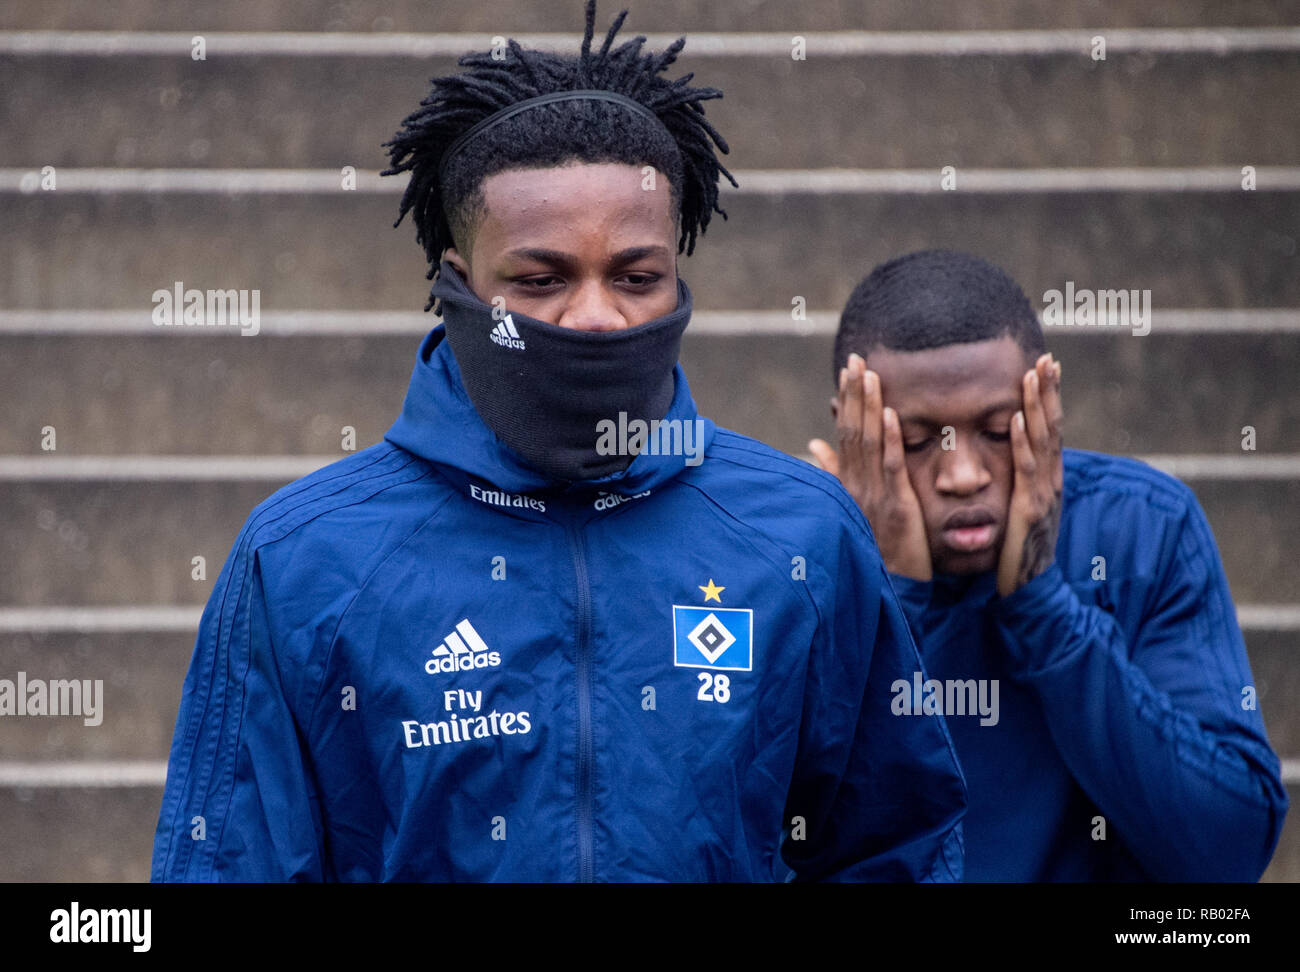 Hamburg, Germany. 05th Jan, 2019. Soccer, 2nd Bundesliga: Hamburg's Gideon Jung (l) and Hamburg's Orel Mangala enter the pitch at the start of Hamburger SV training. Credit: Axel Heimken/dpa/Alamy Live News - Stock Image